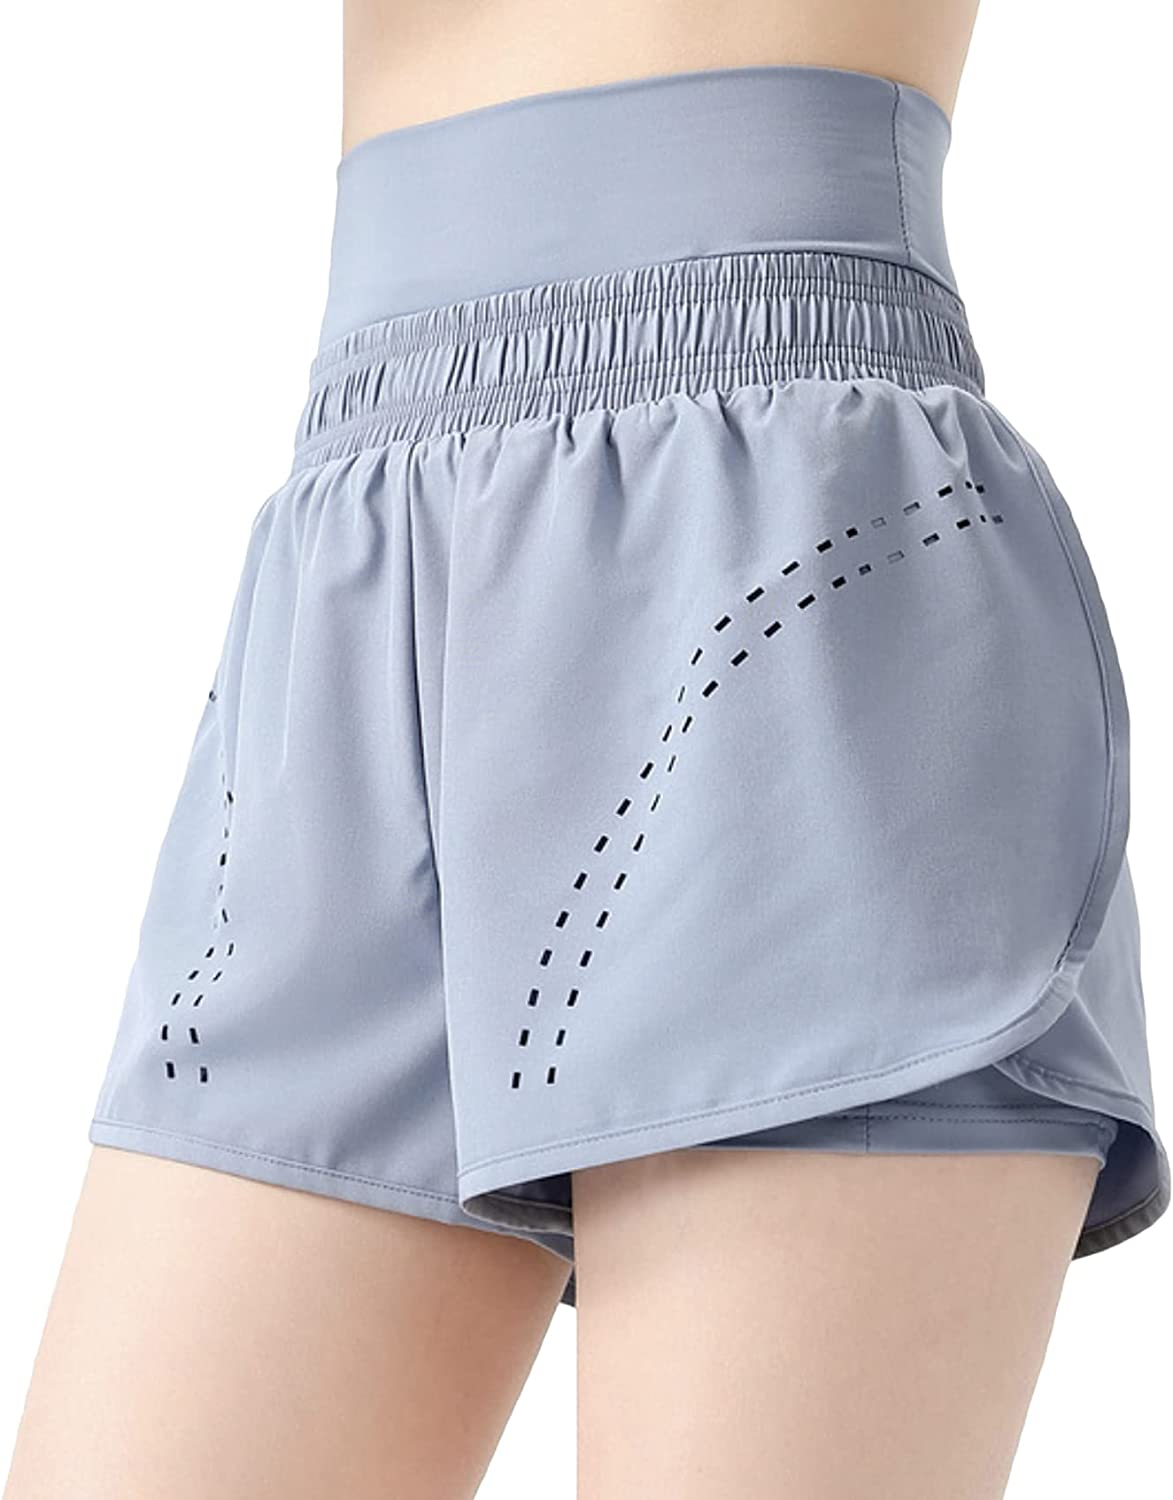 ALWAYS High Waisted Women's Shorts - Inner Layer Quick Dry Athletic Running Shorts